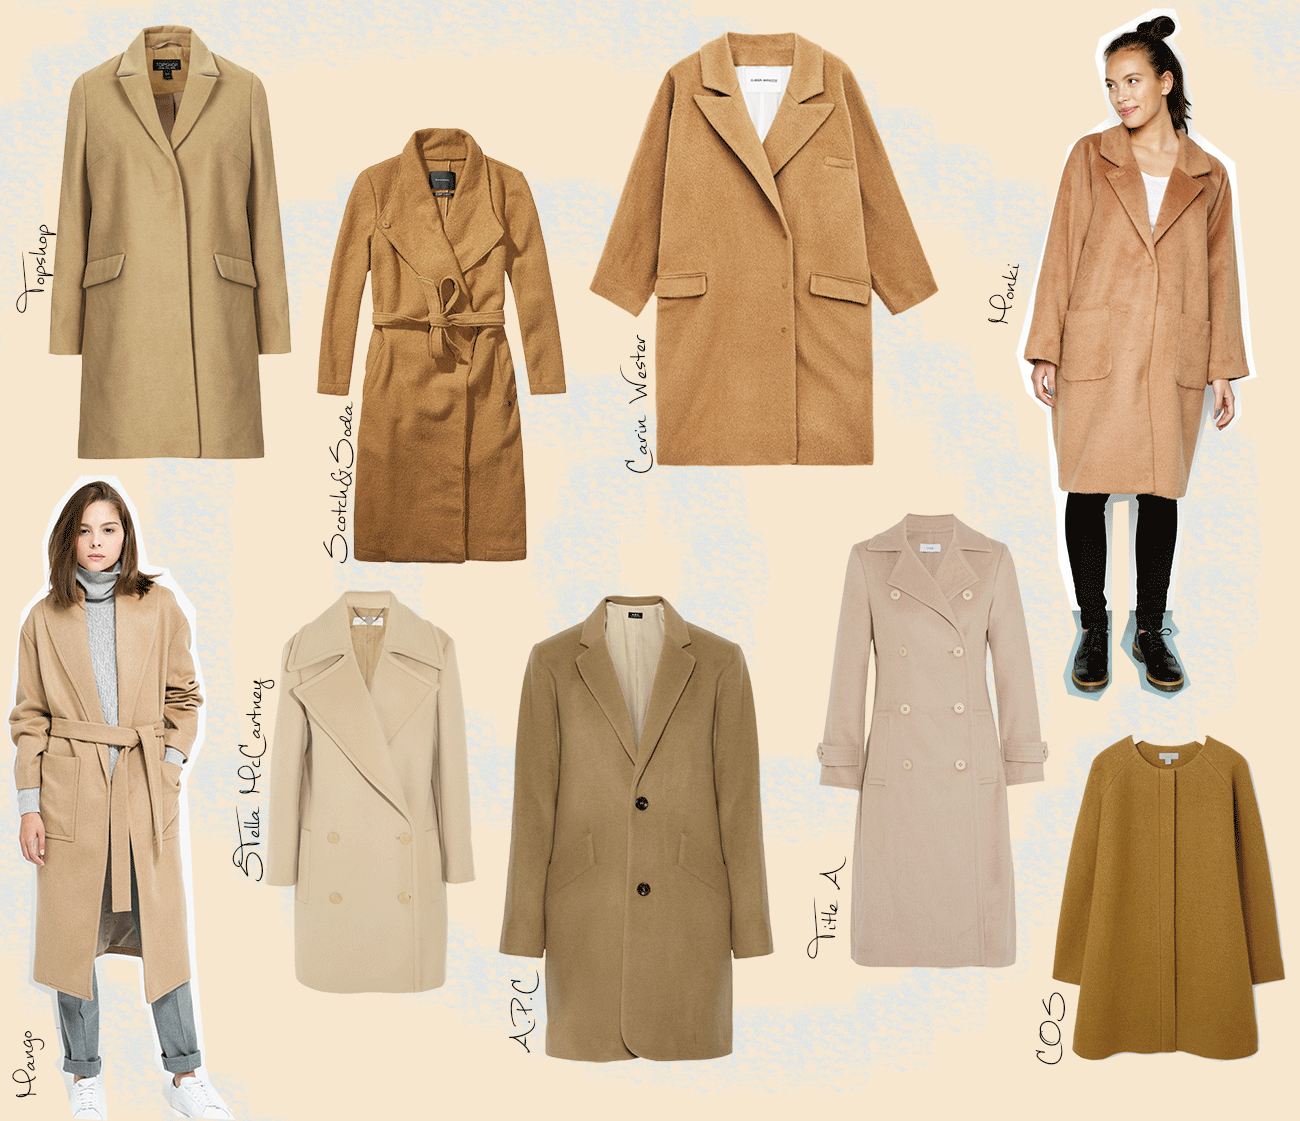 camel-coat-shopping-camel-mantel-